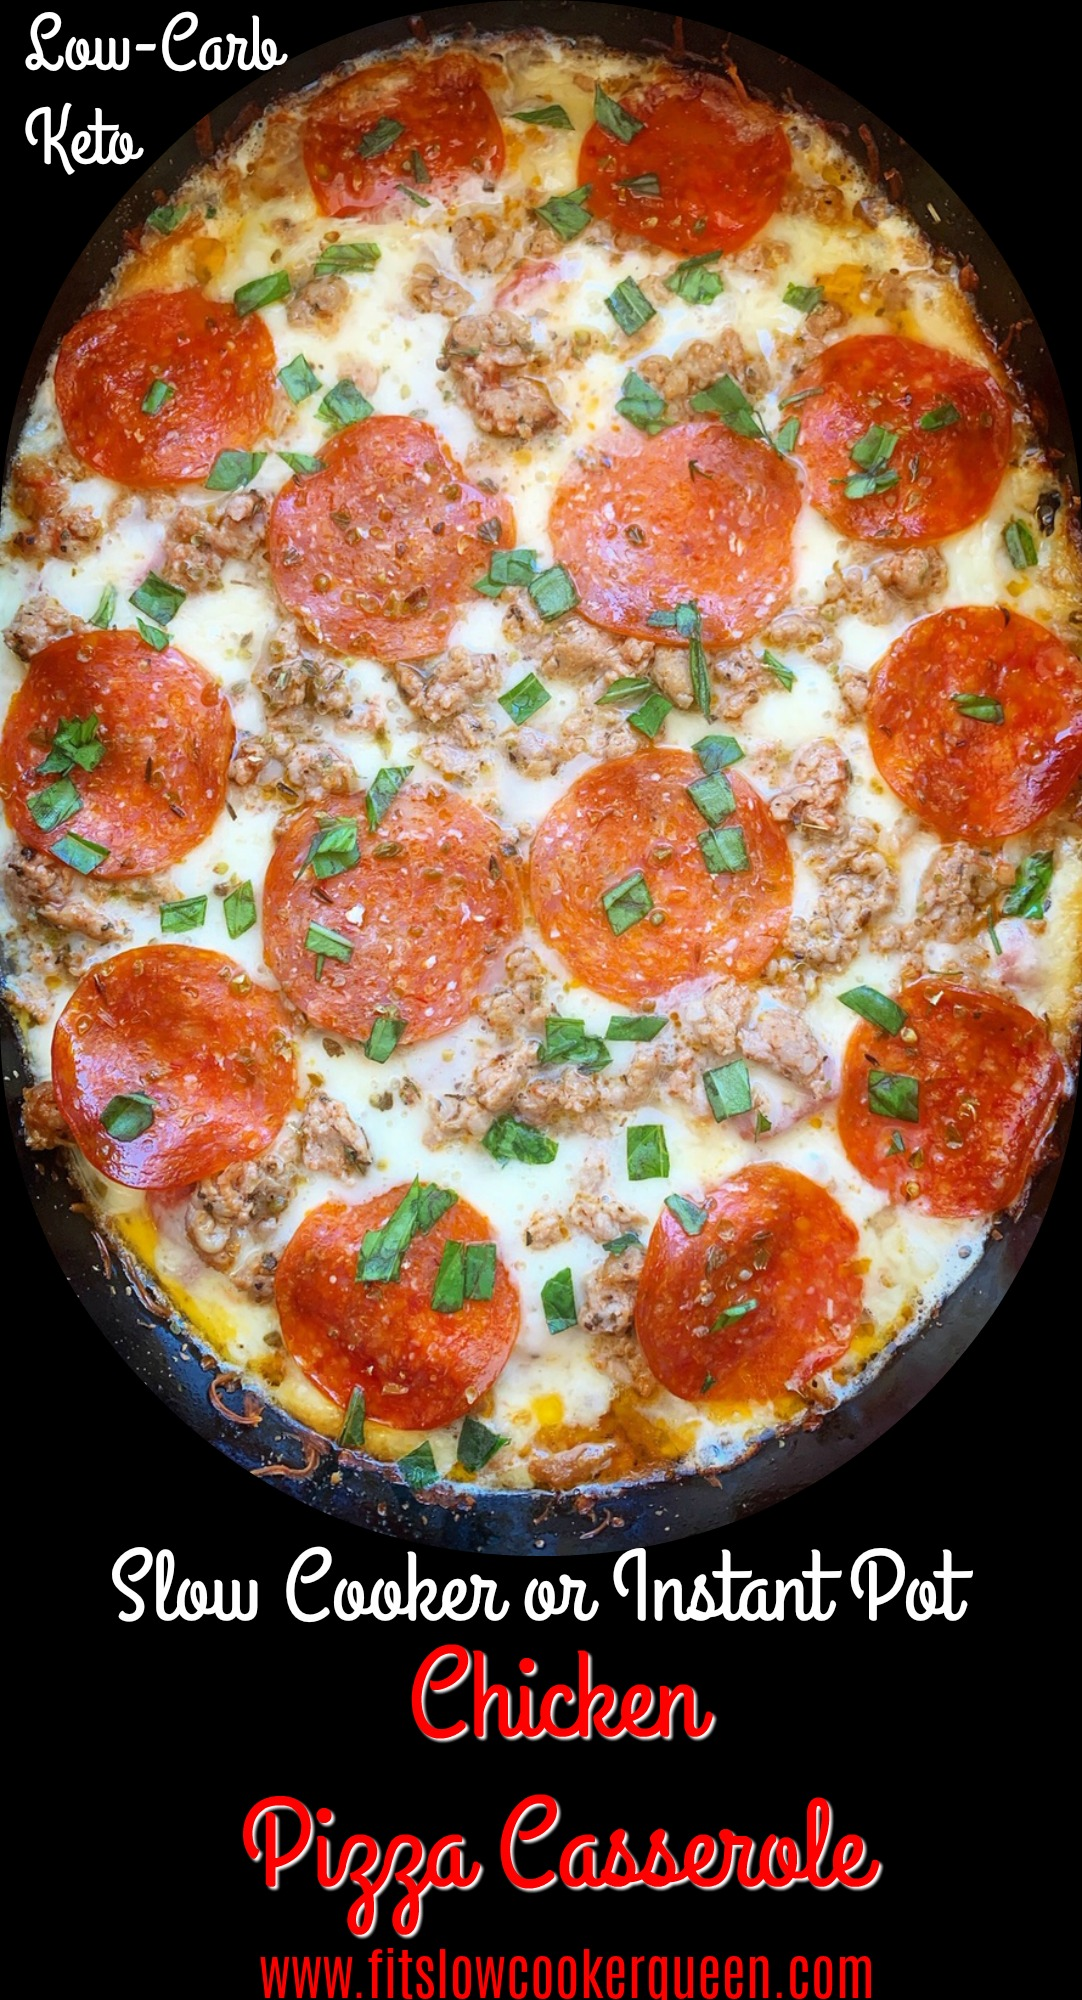 Chicken pizza casserole is an easy casserole the entire family will enjoy. Make this low-carb pizza-inspired meal in your slow cooker or Instant Pot.